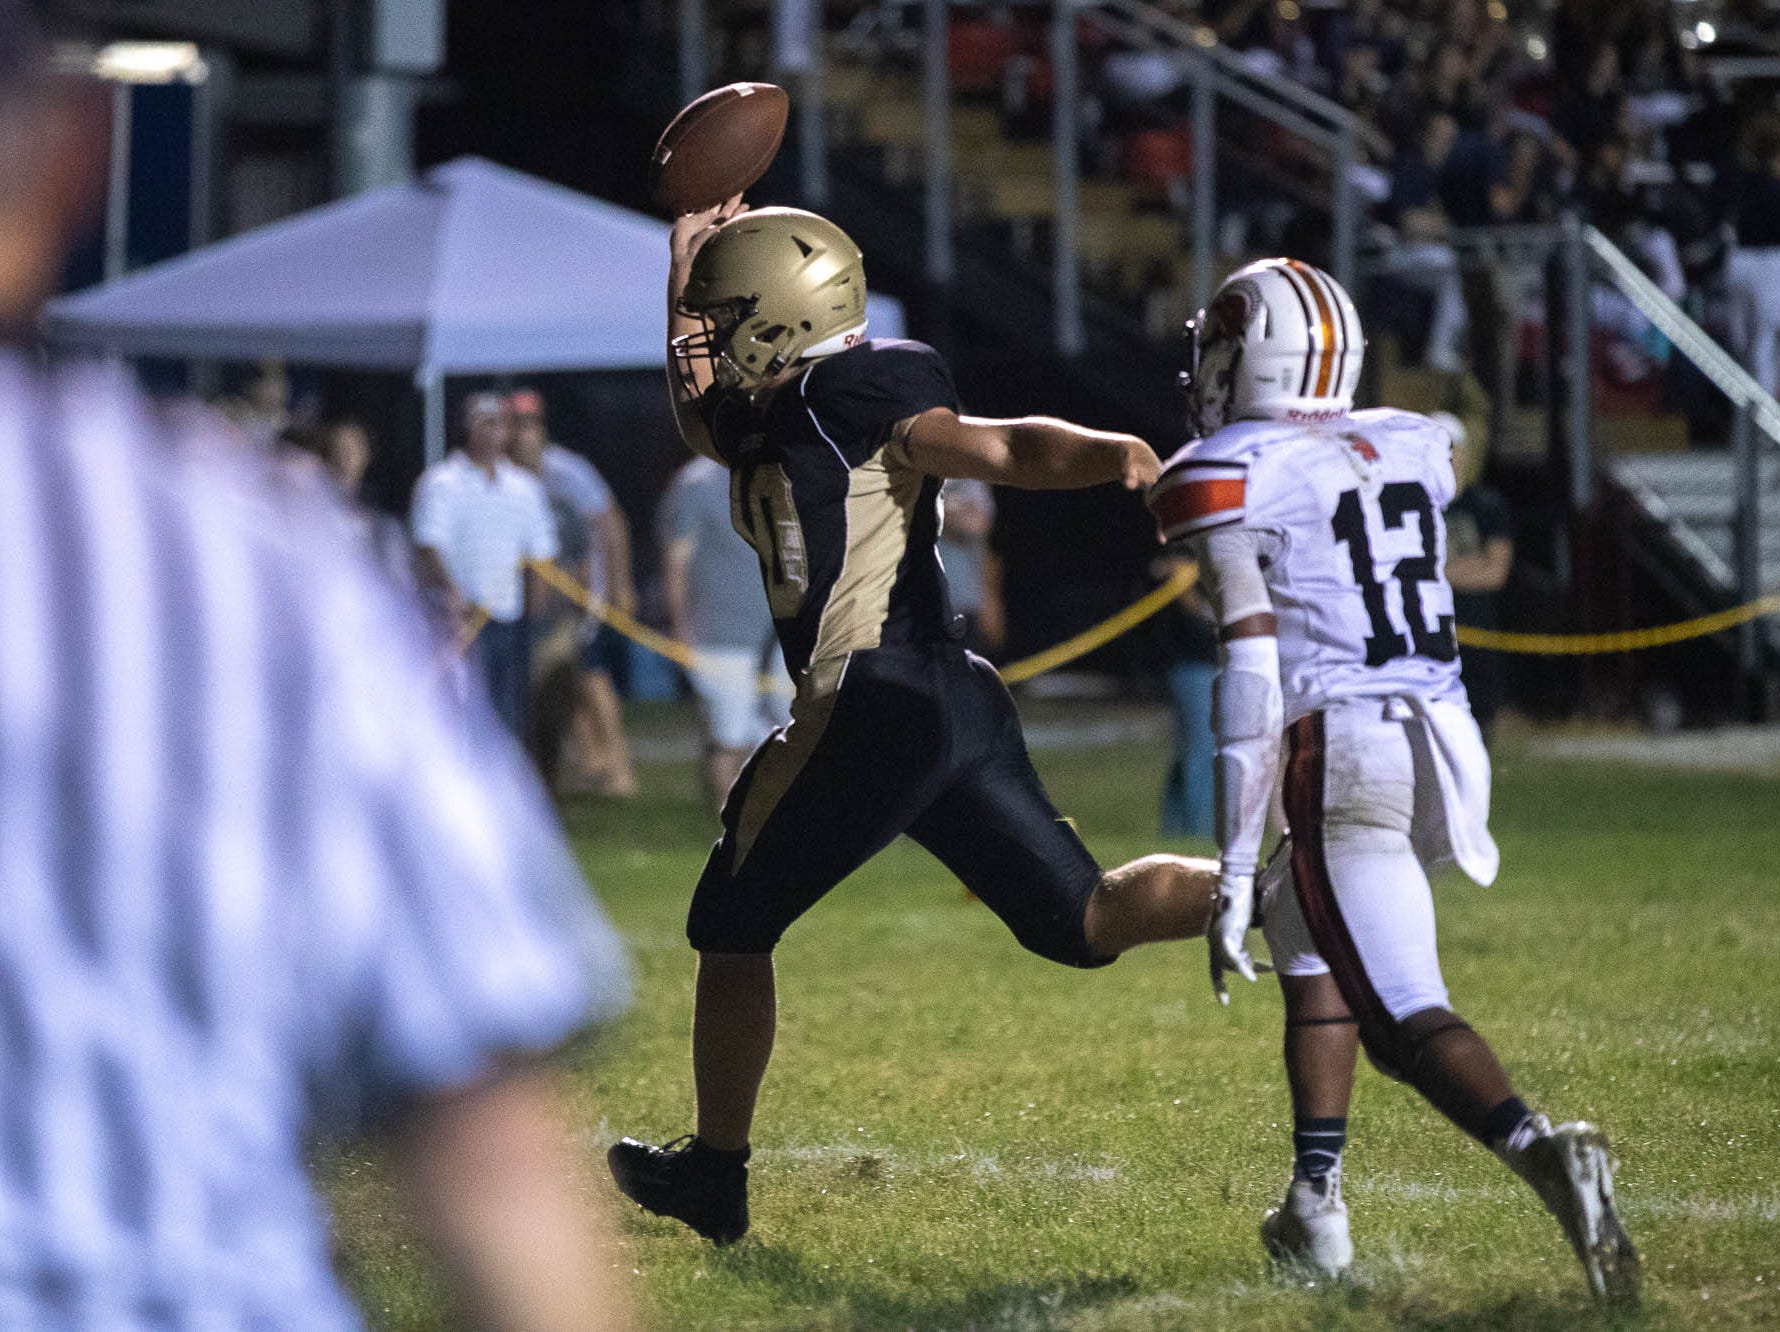 Delone's Josh Fulton (40) scores a touchdown during the second half of a football game between Delone Catholic and York Suburban, Friday, Aug. 31, 2018, at Delone Catholic High School in McSherrystown. Delone beat York Suburban 62-0.